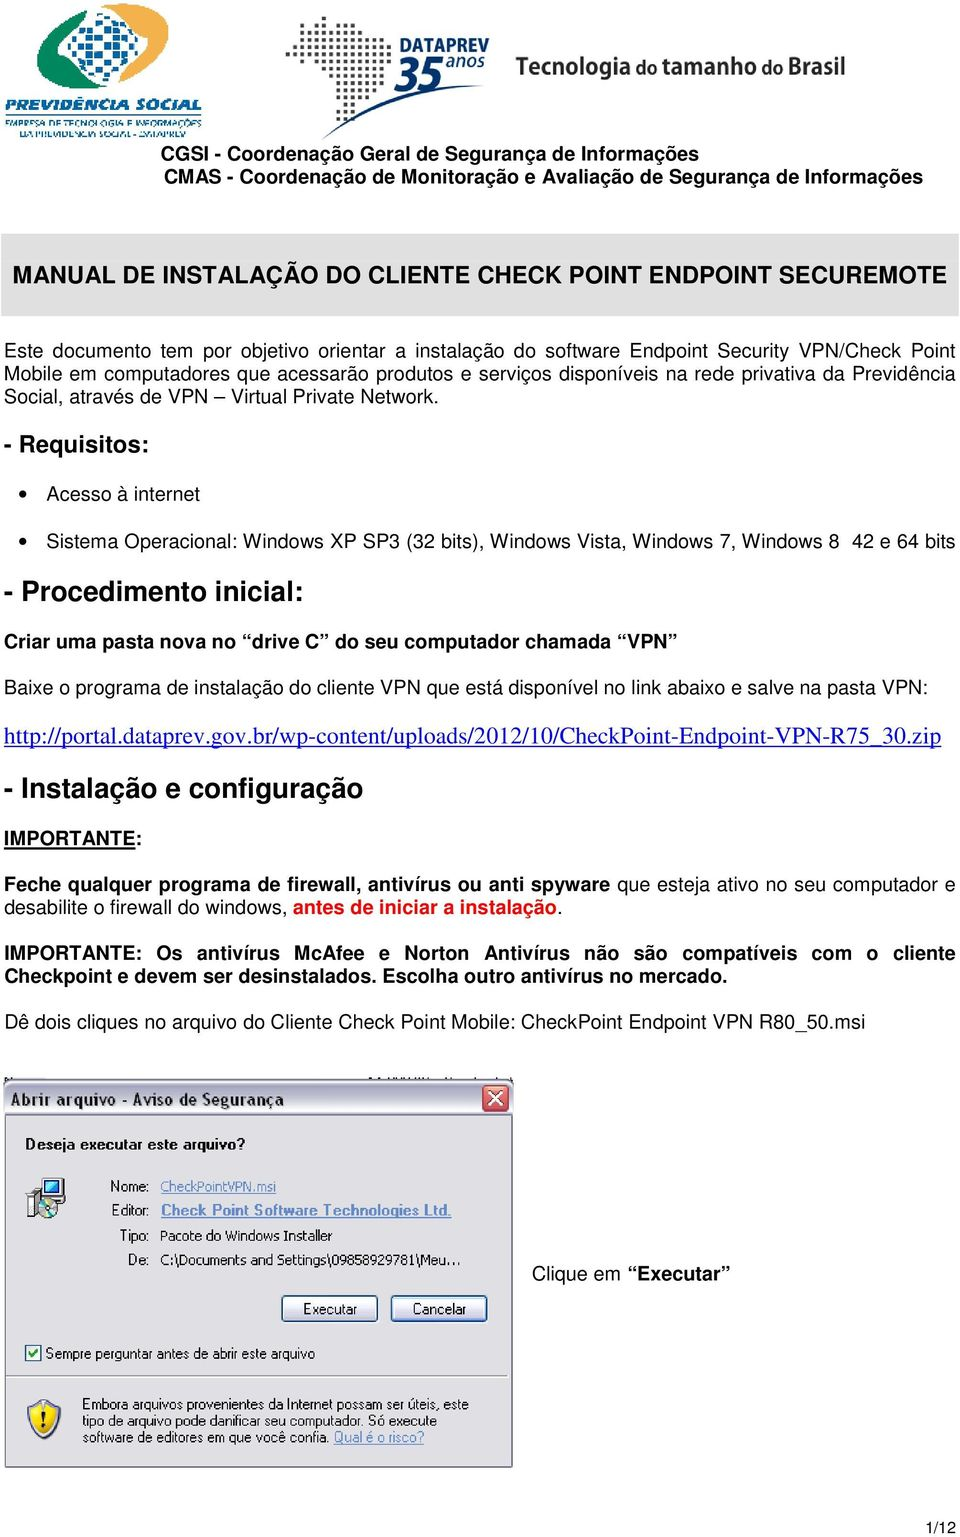 - Requisitos: Acesso à internet Sistema Operacional: Windows XP SP3 (32 bits), Windows Vista, Windows 7, Windows 8 42 e 64 bits - Procedimento inicial: Criar uma pasta nova no drive C do seu